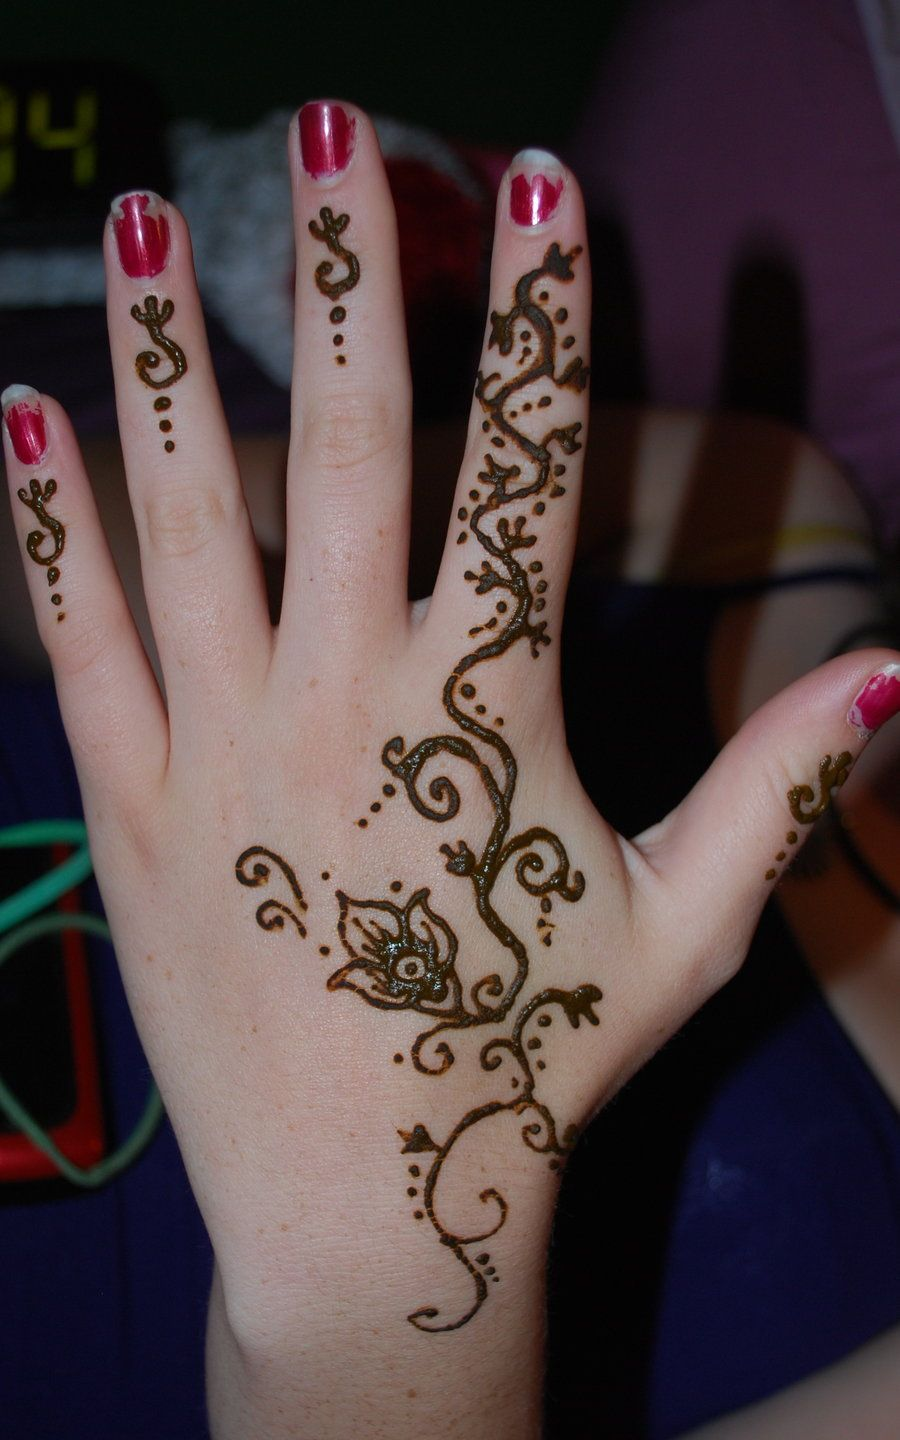 Tattooed Fingers Vines Vine Tattoos On Hand Henna Vine Hand By